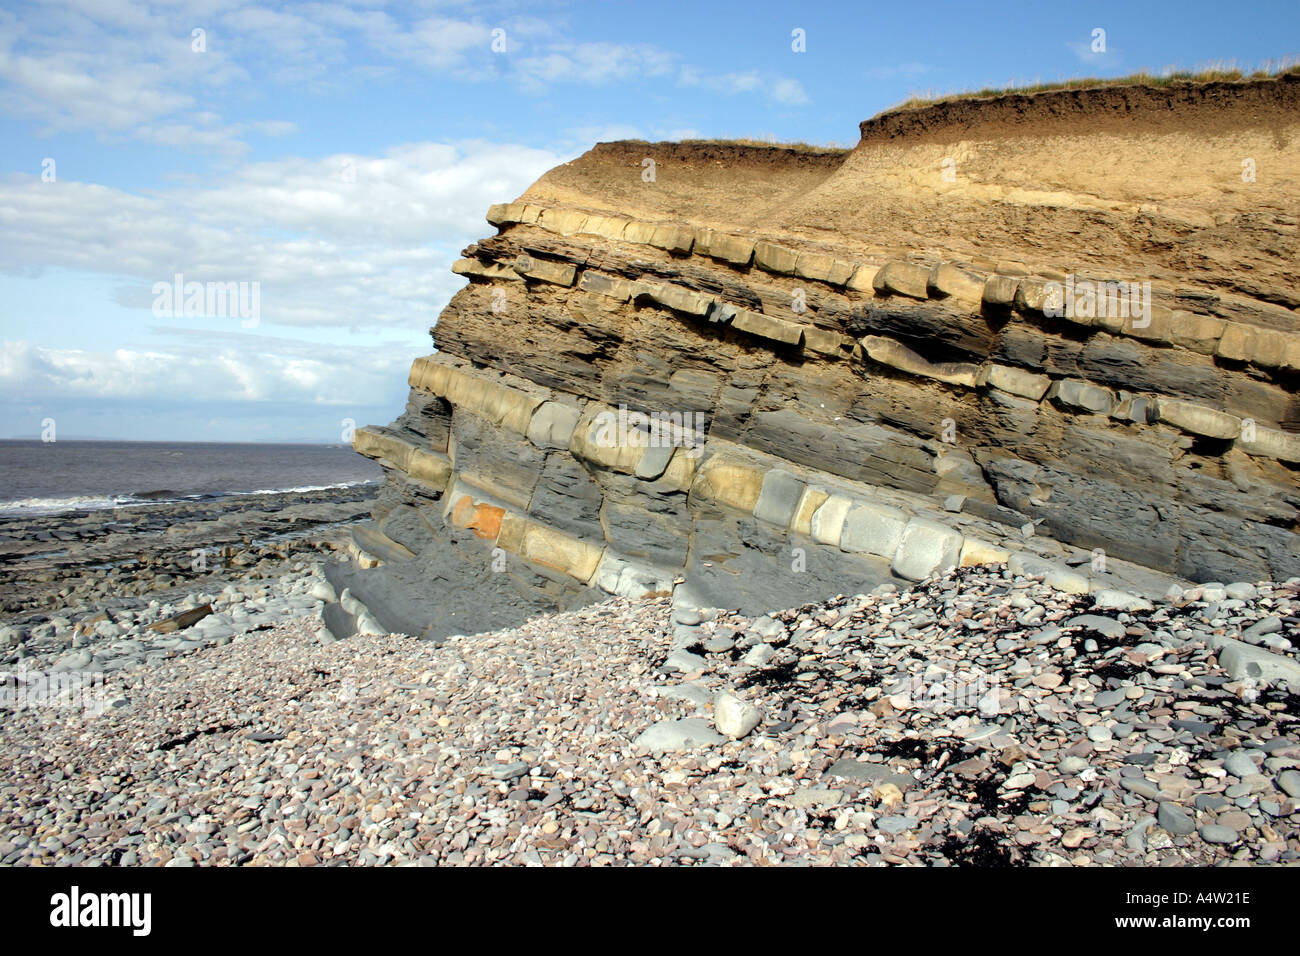 Alternating bands of limestone and shale visible at the cliffs Kilve Beach Somerset England Stock Photo